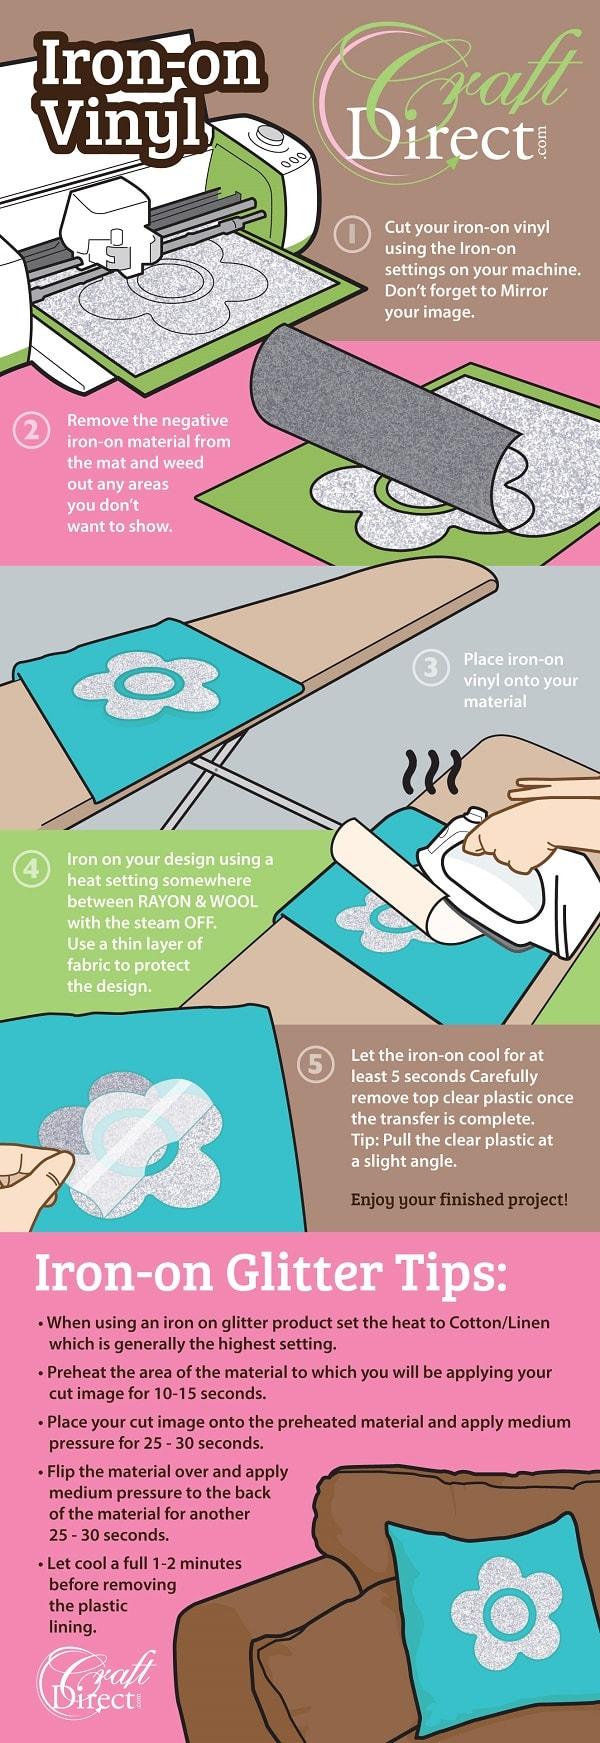 cricut iron-on tutorial how to guide infographic